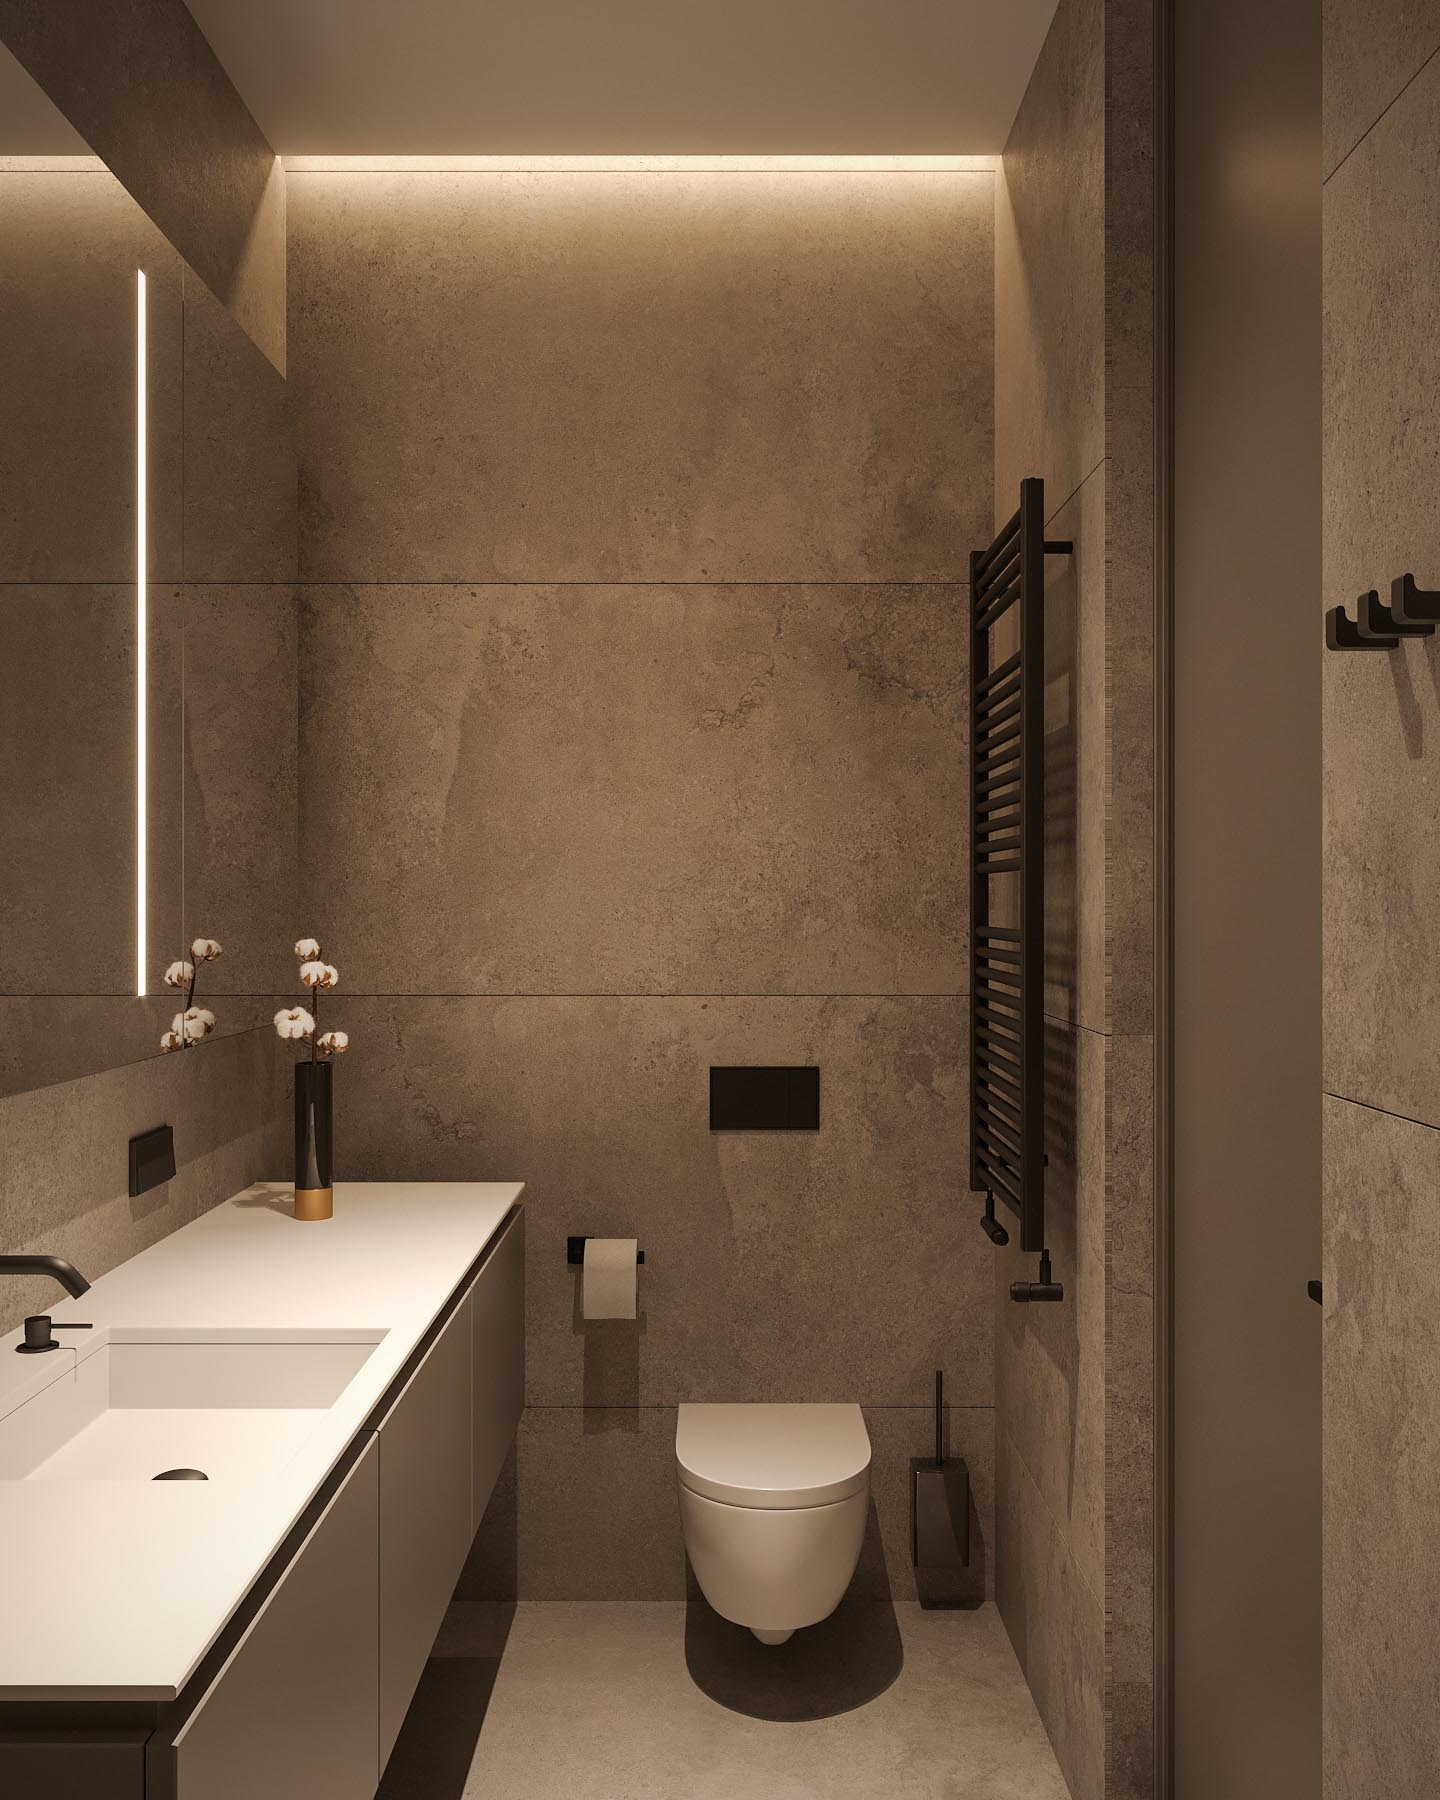 A modern bathroom with a white vanity, large format tiles, and black accents.